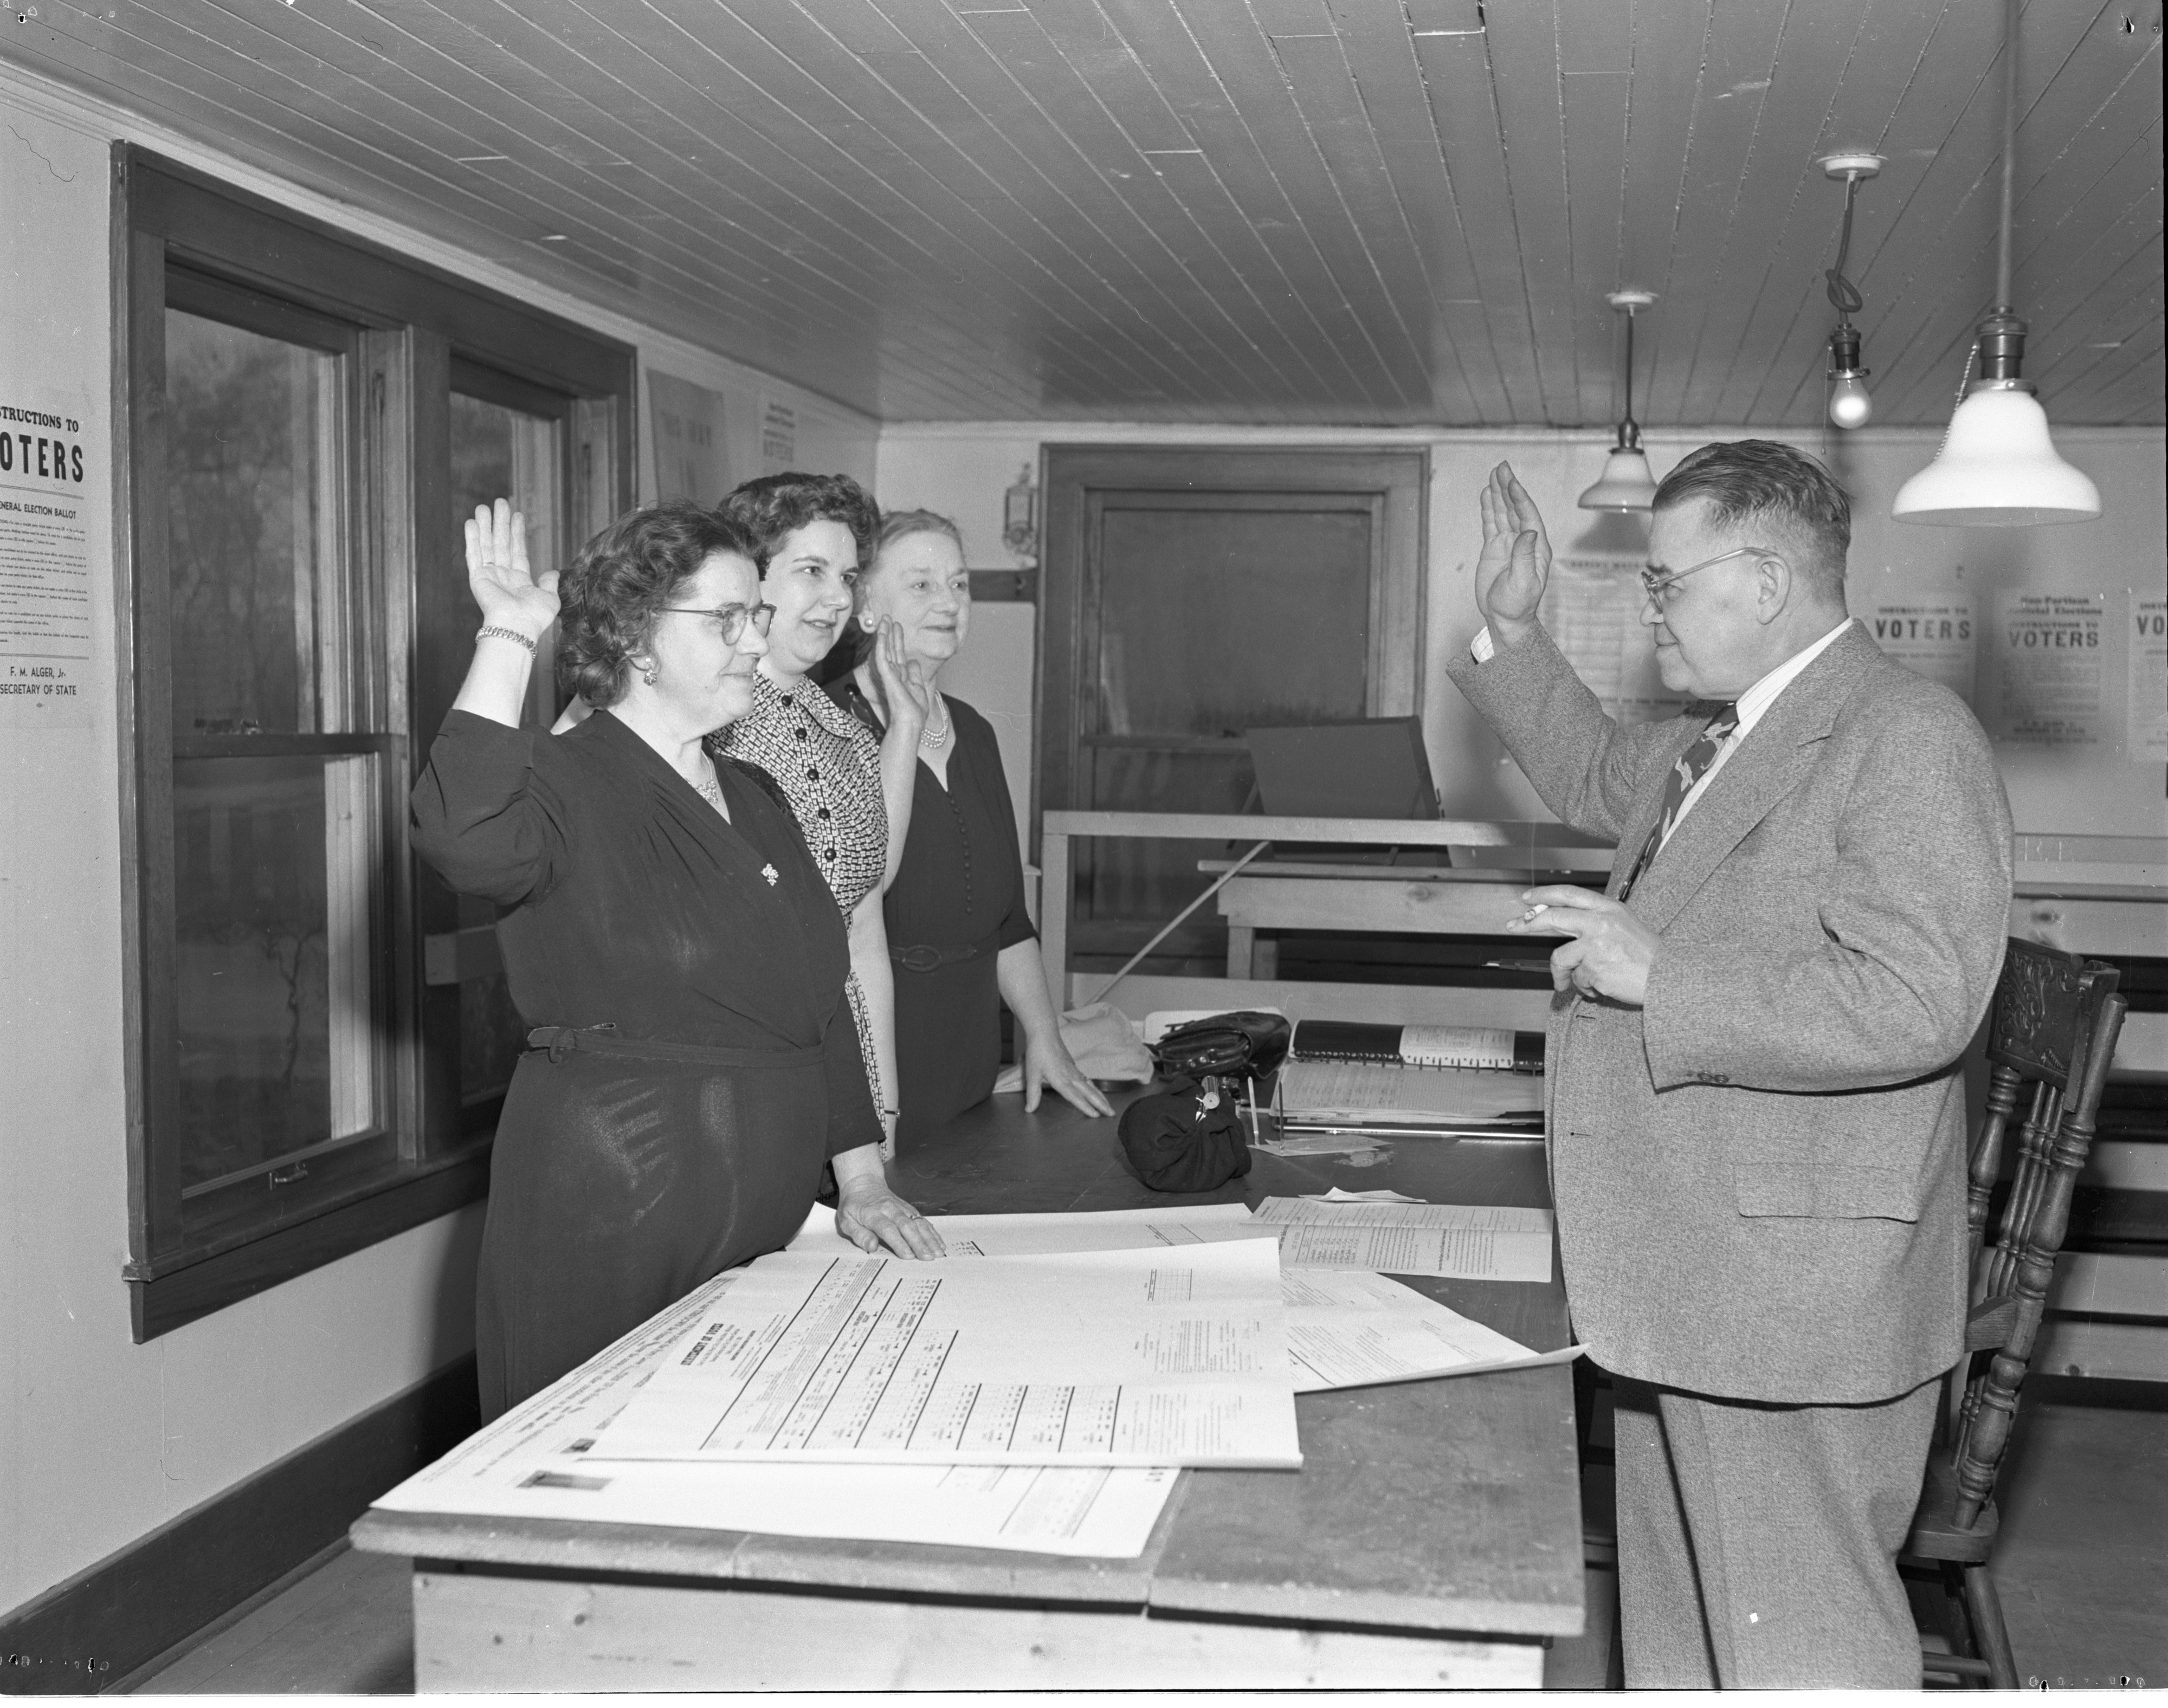 Image from 5th Ward Election Officials Sworn In By Henry Eckstein, April 1951